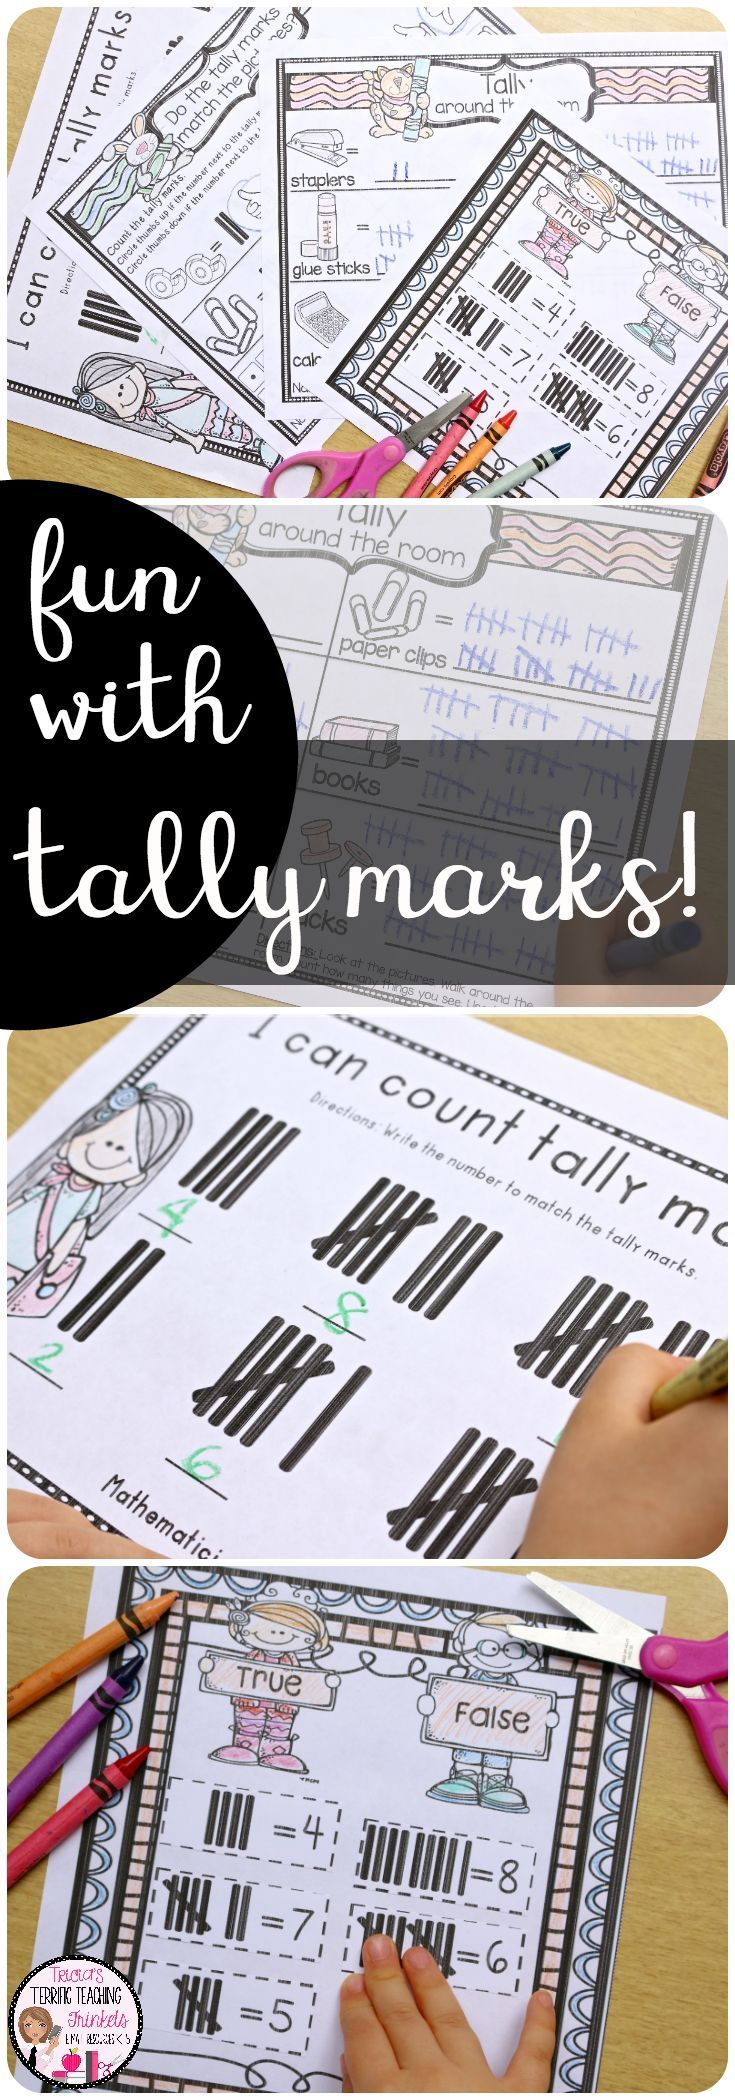 Tally Marks Practice and Activities for Kindergarten Math and First Grade Math.  Percent Tally Marks Counting Activities for Math Centers too!